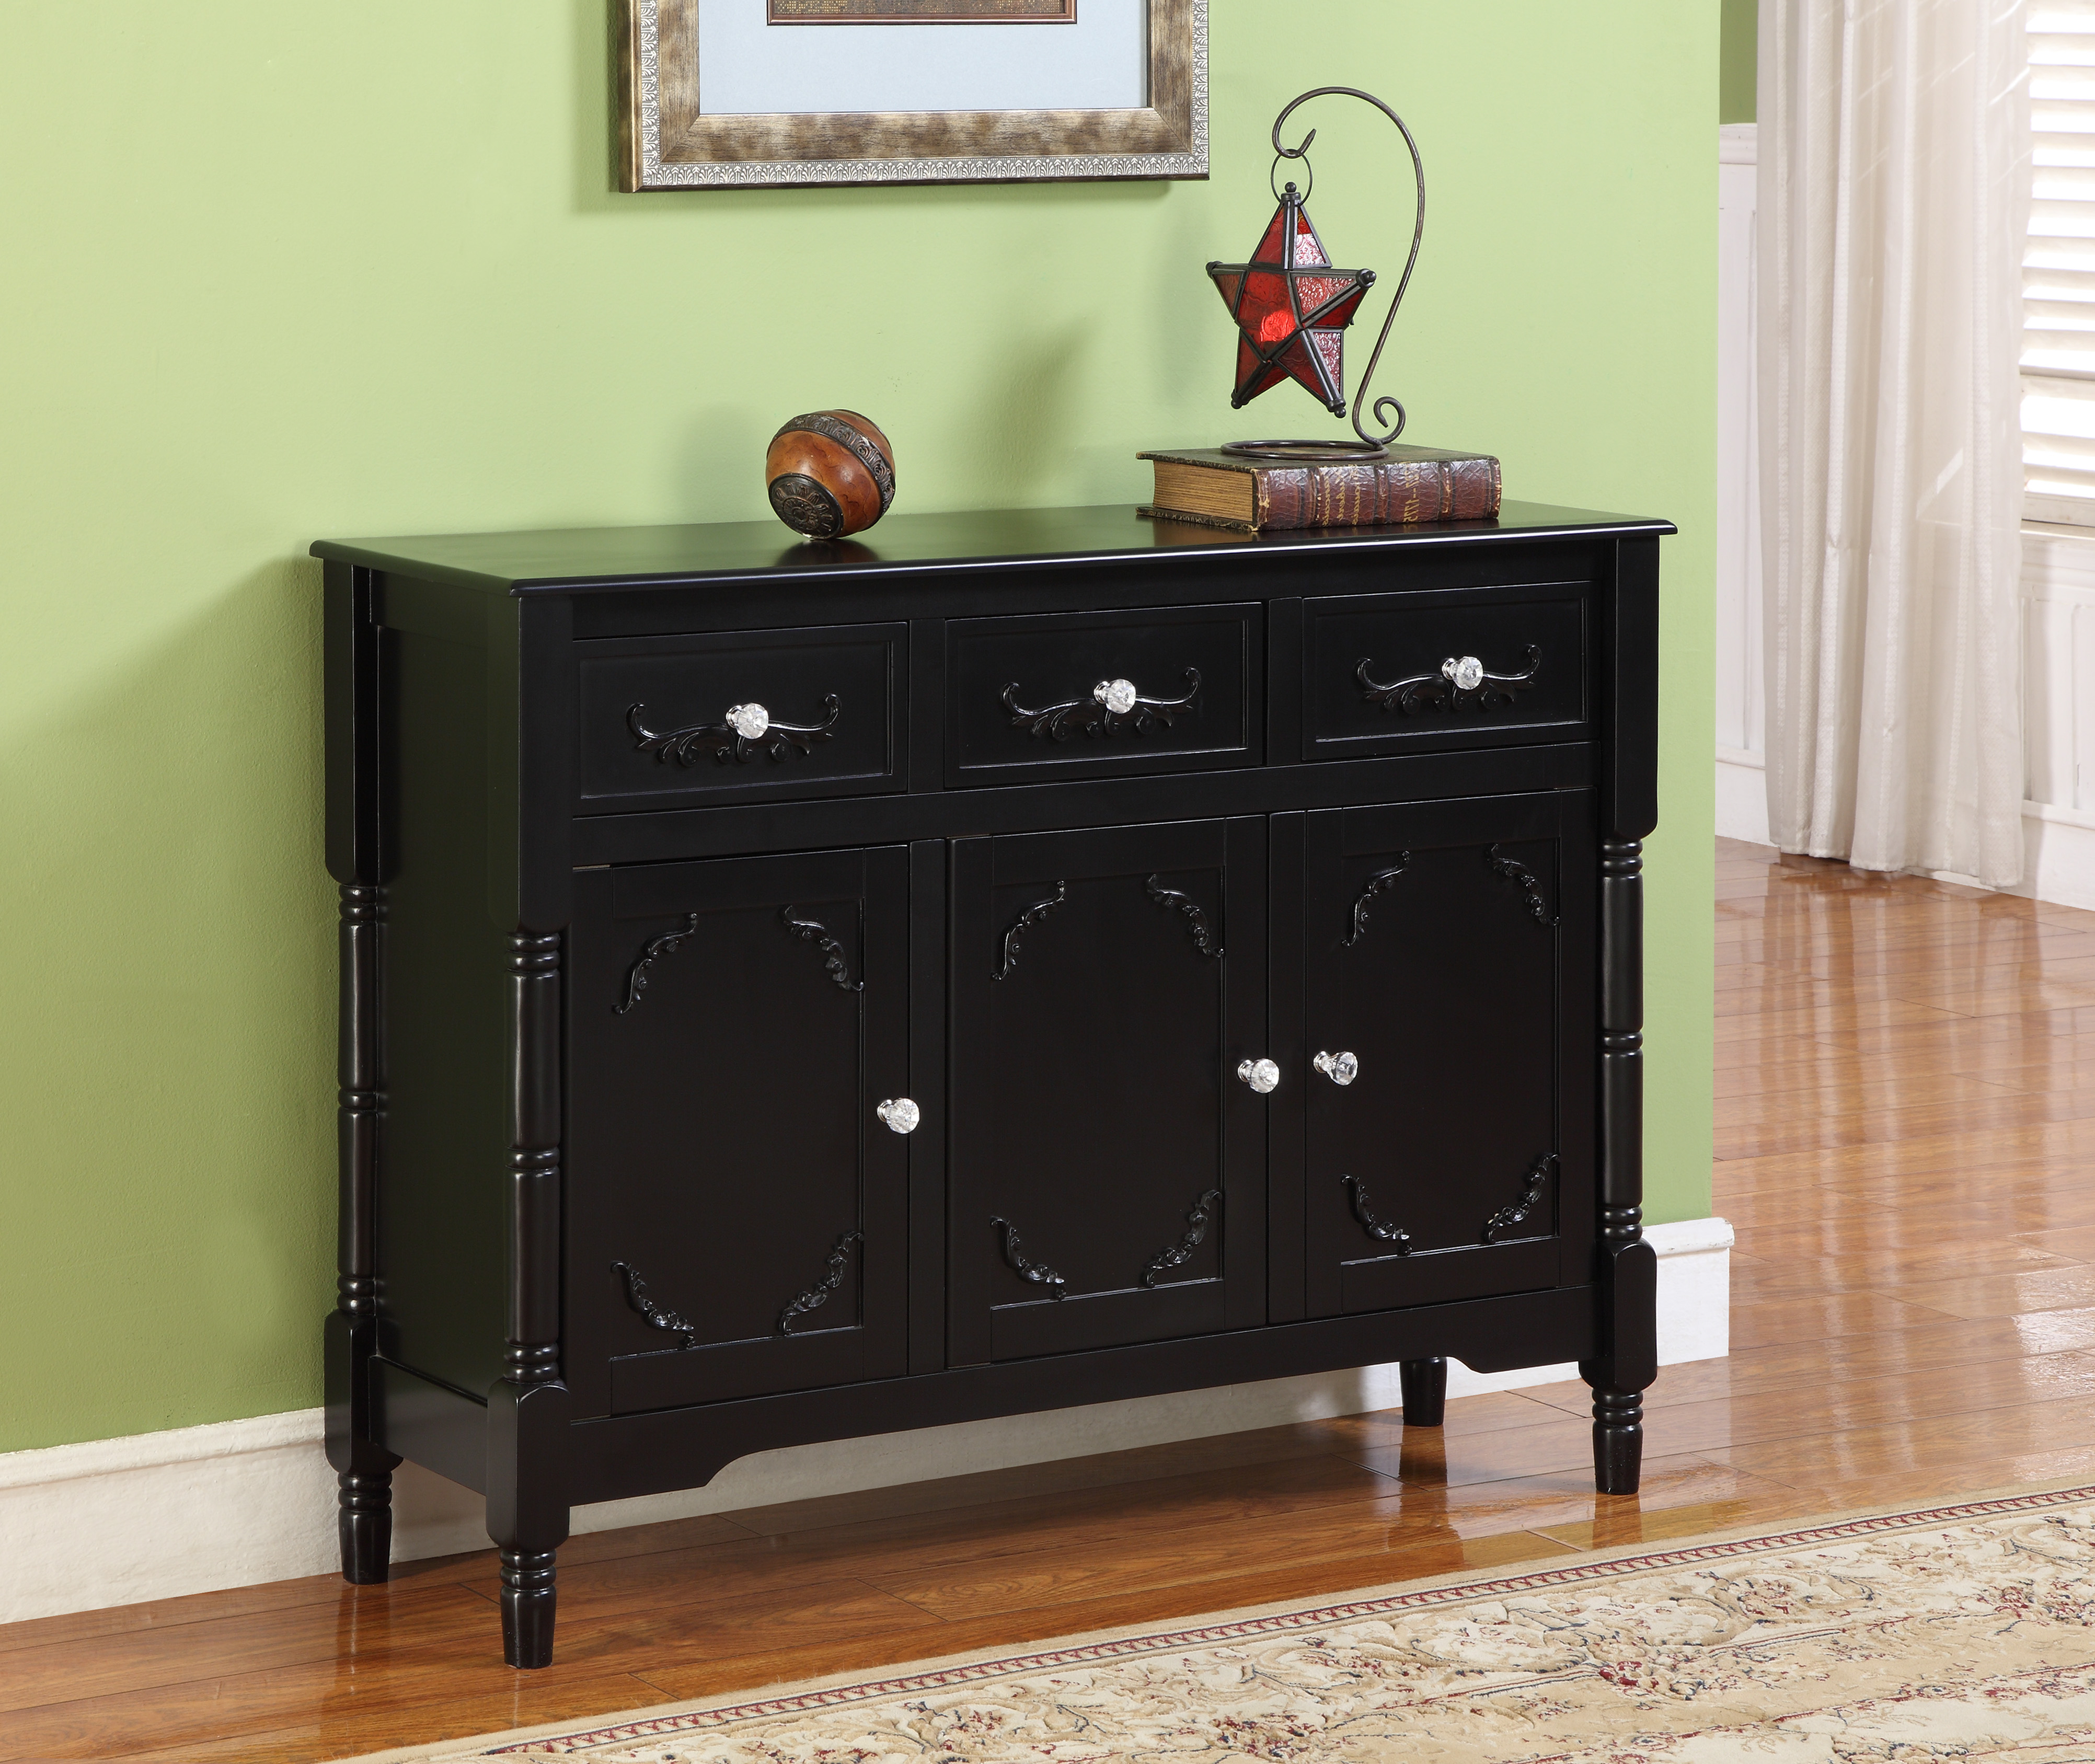 Camden Black Wood Contemporary Sideboard Buffet Display Console Table With Storage Drawers & Doors For Contemporary Black Buffets (View 7 of 30)